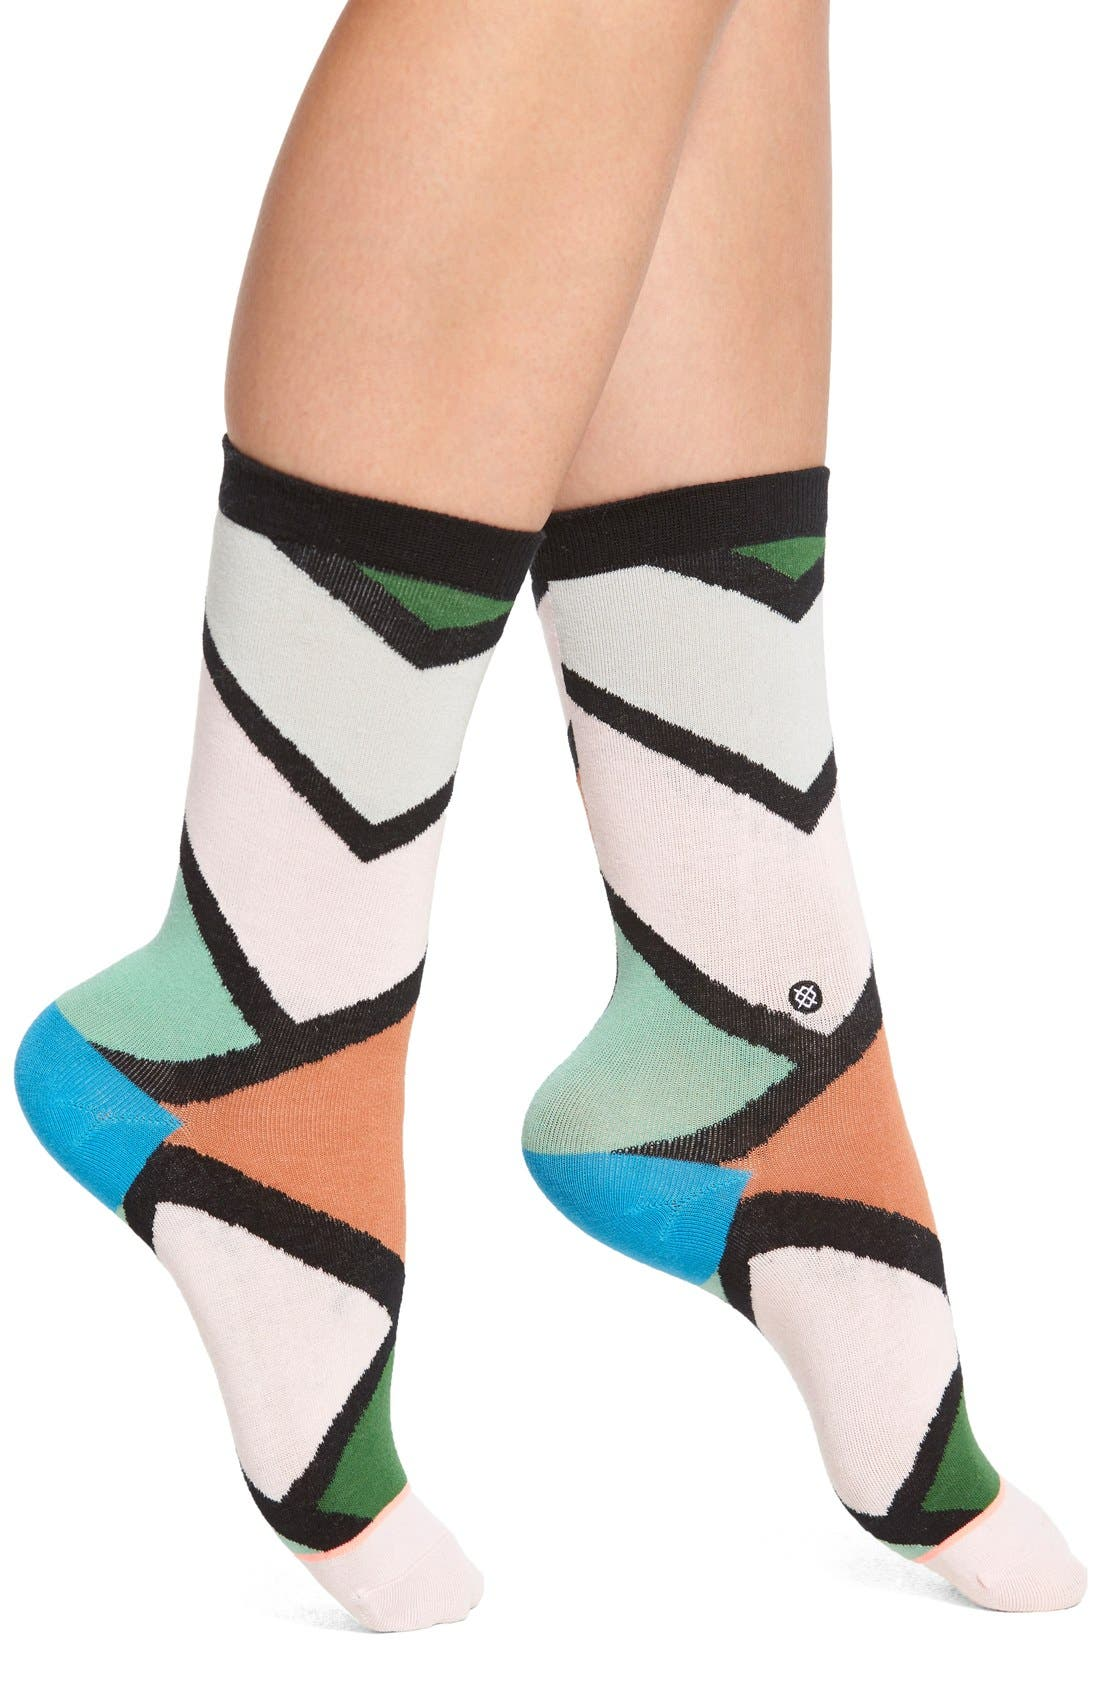 Main Image - Stance 'Steezy' Crew Socks